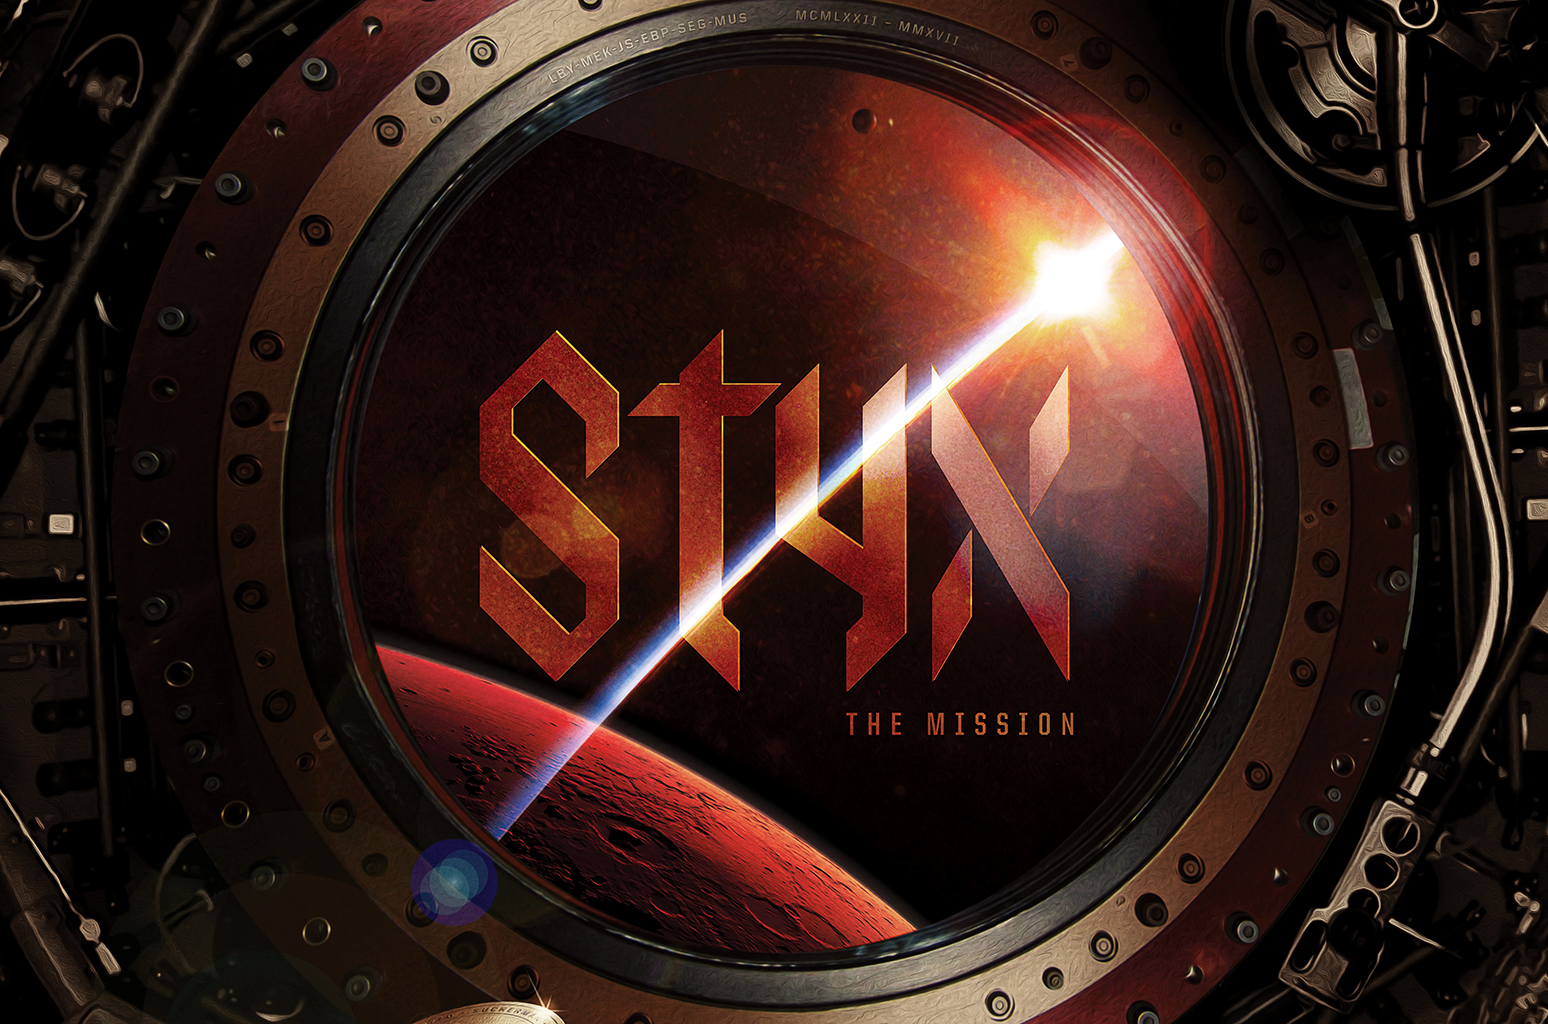 Styx-The-Mission-album-art-2017-billboard-1548.jpg